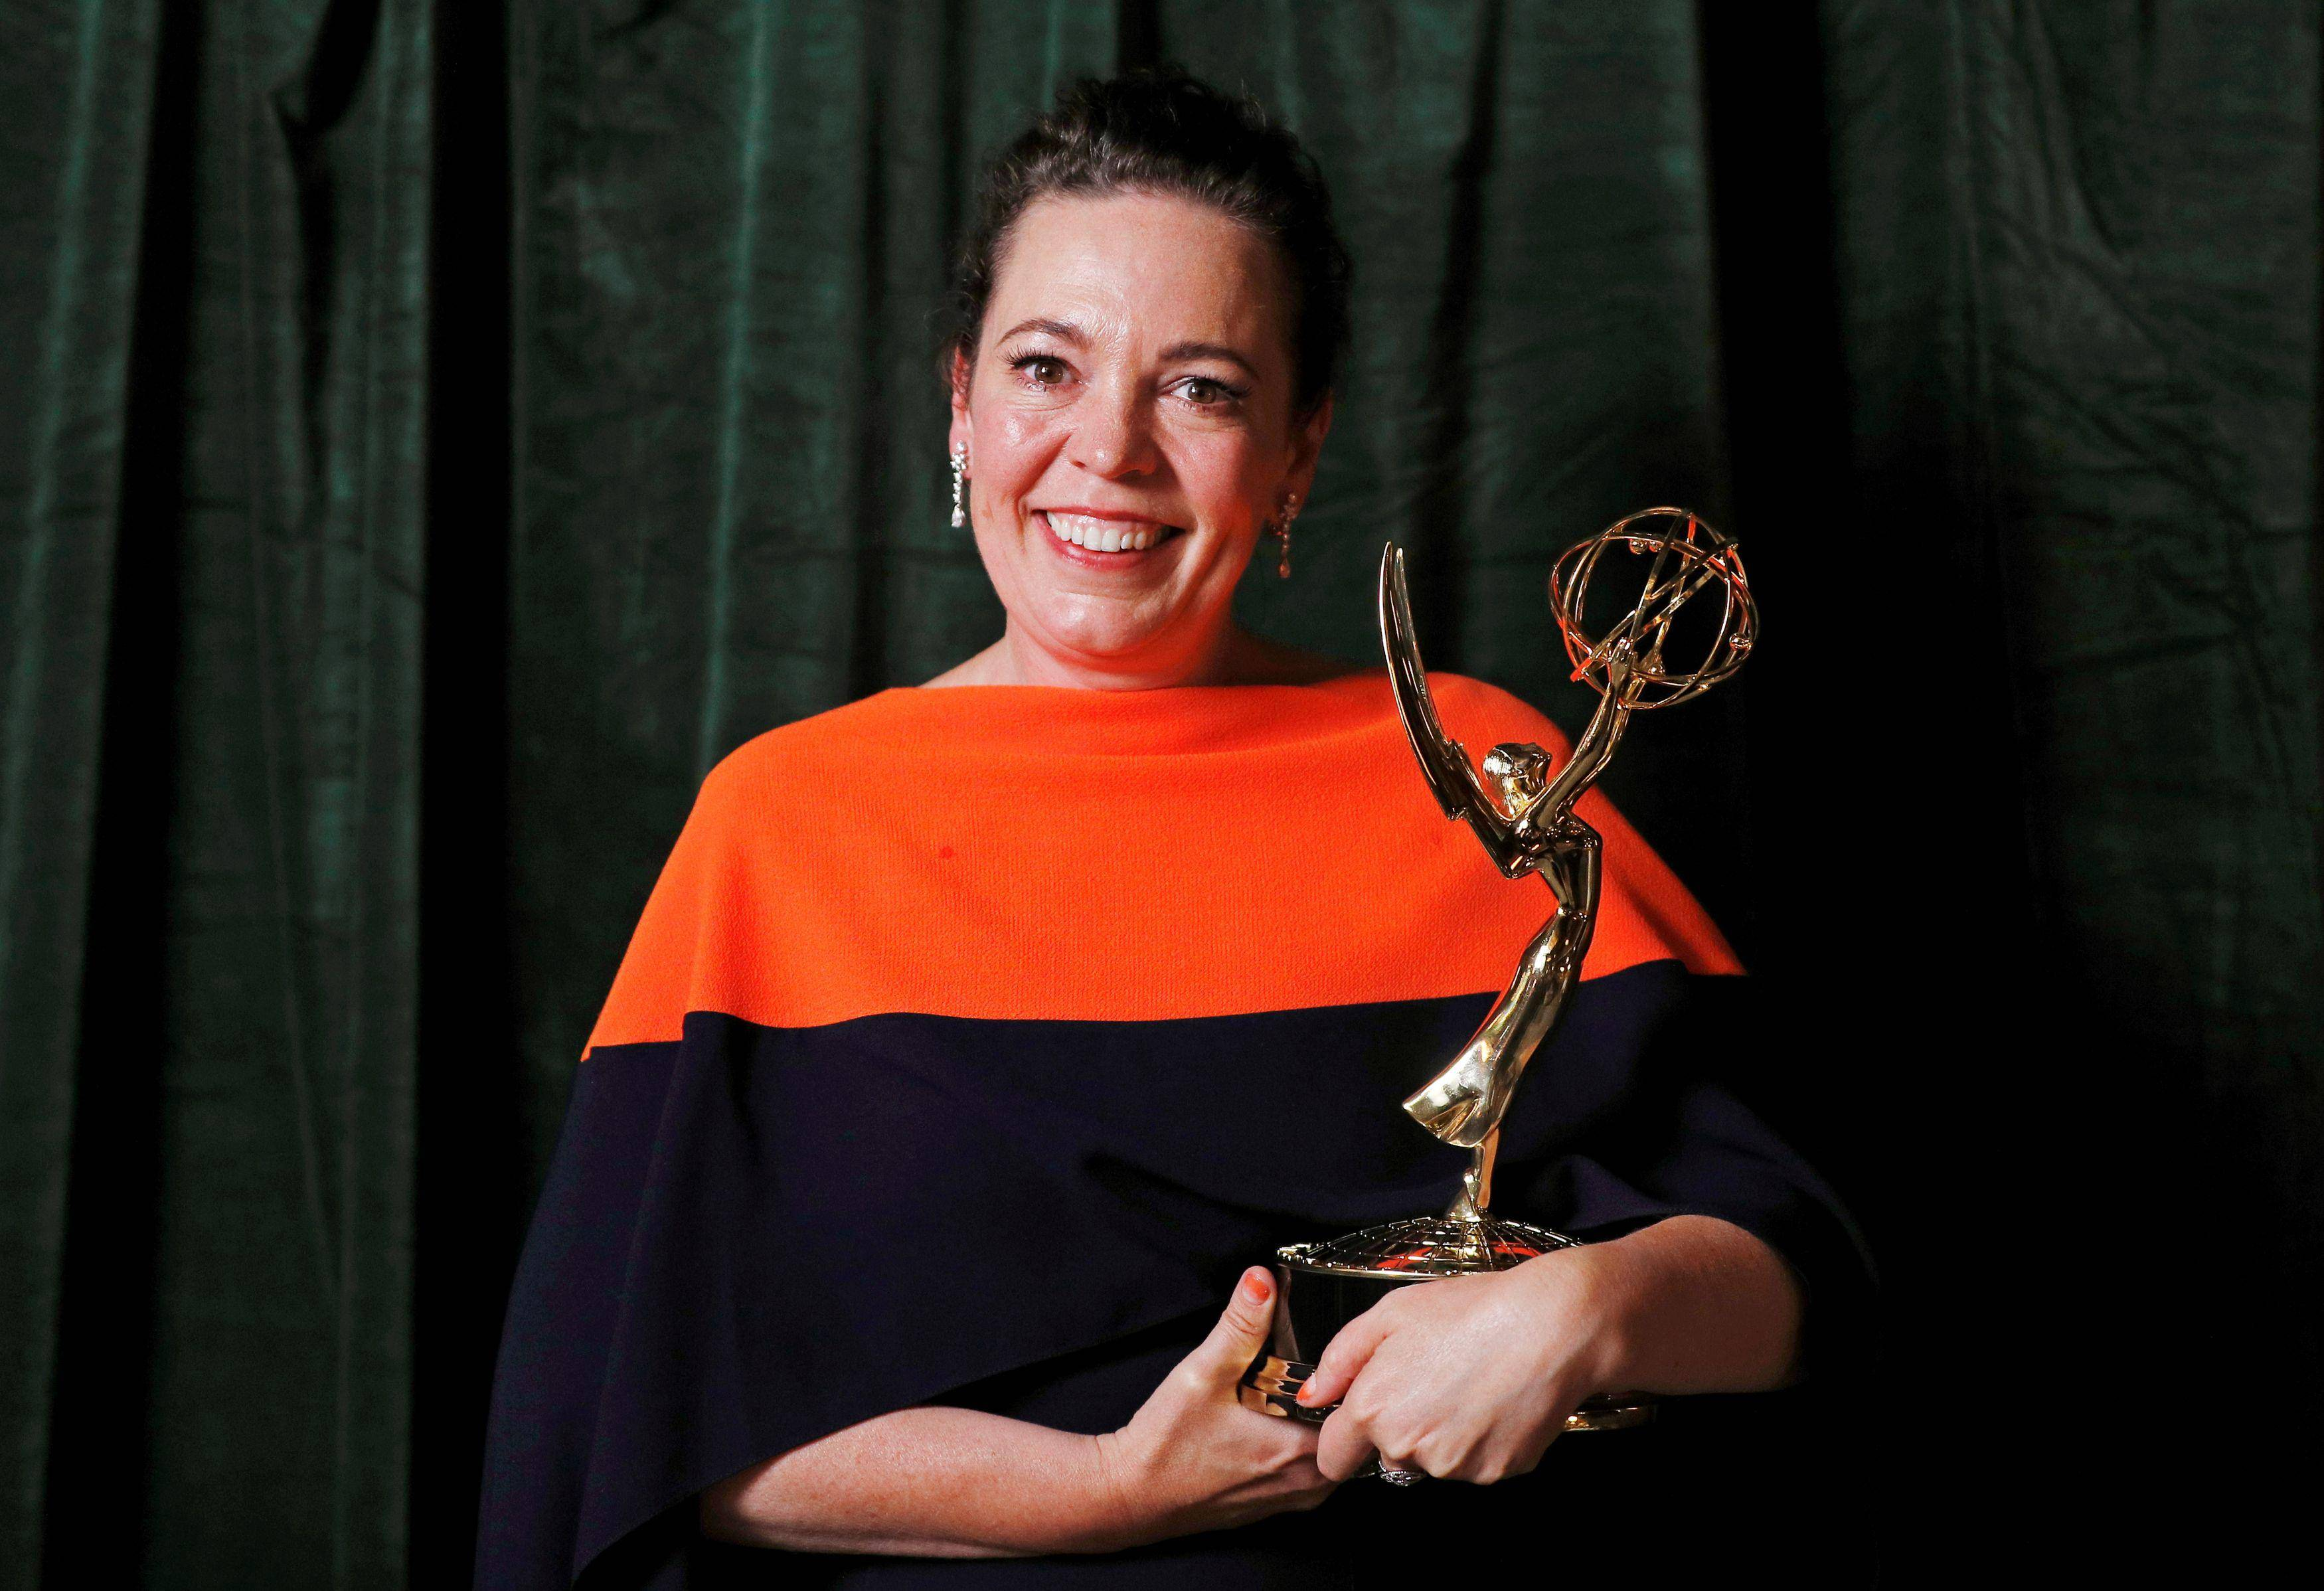 Emmys 2021: Netflix dominates with 'The Crown' sweep and 'Queen's Gambit' win